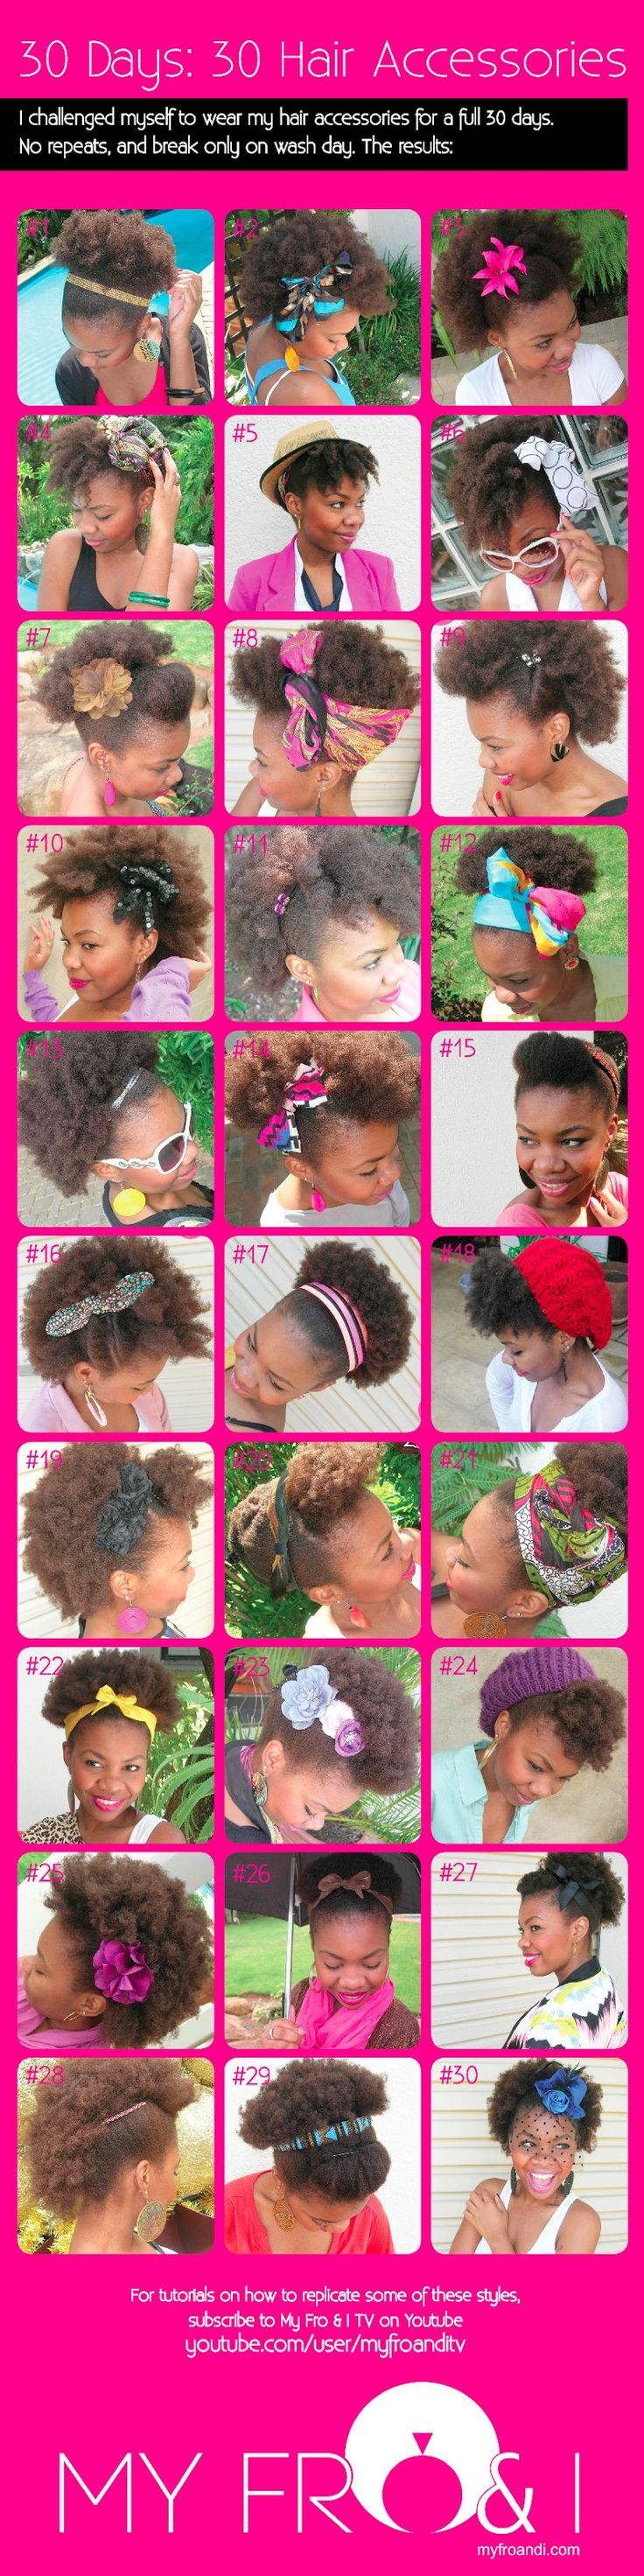 My Fro & I : A South African Natural Hair & Beauty Blog: 30 Hair Accessories